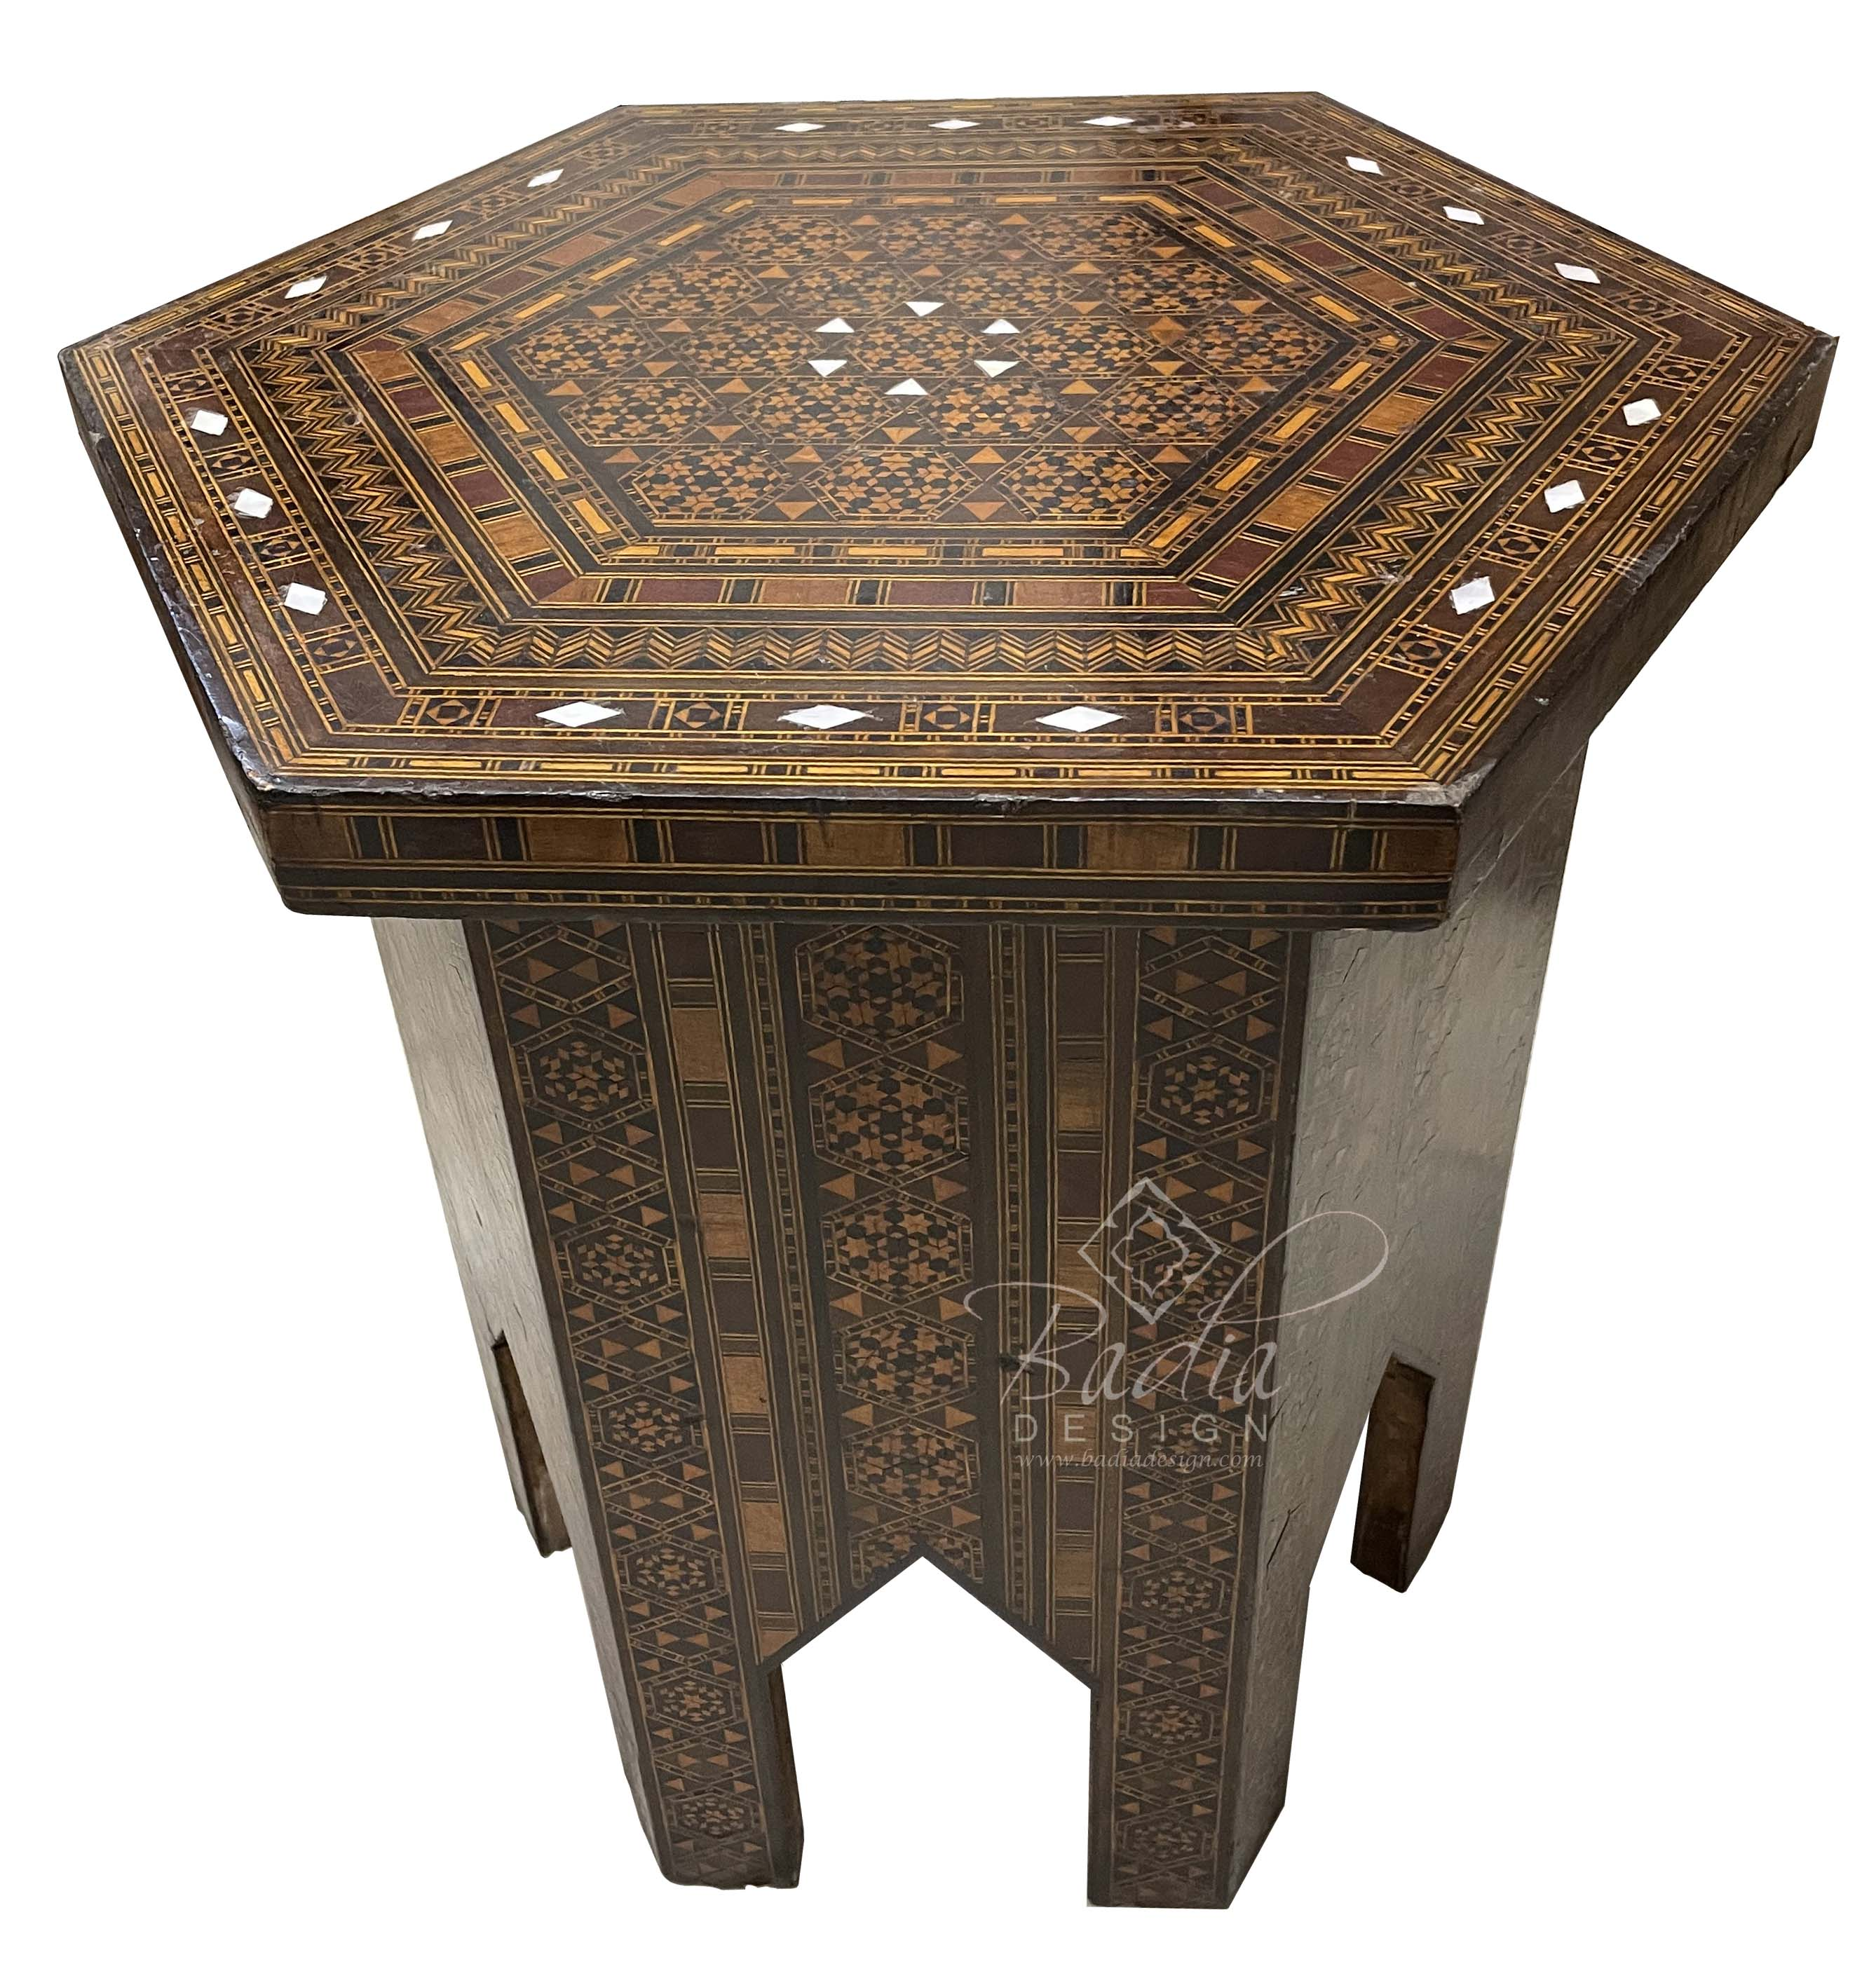 syrian-design-inlaid-side-table-mop-st109-1.jpg